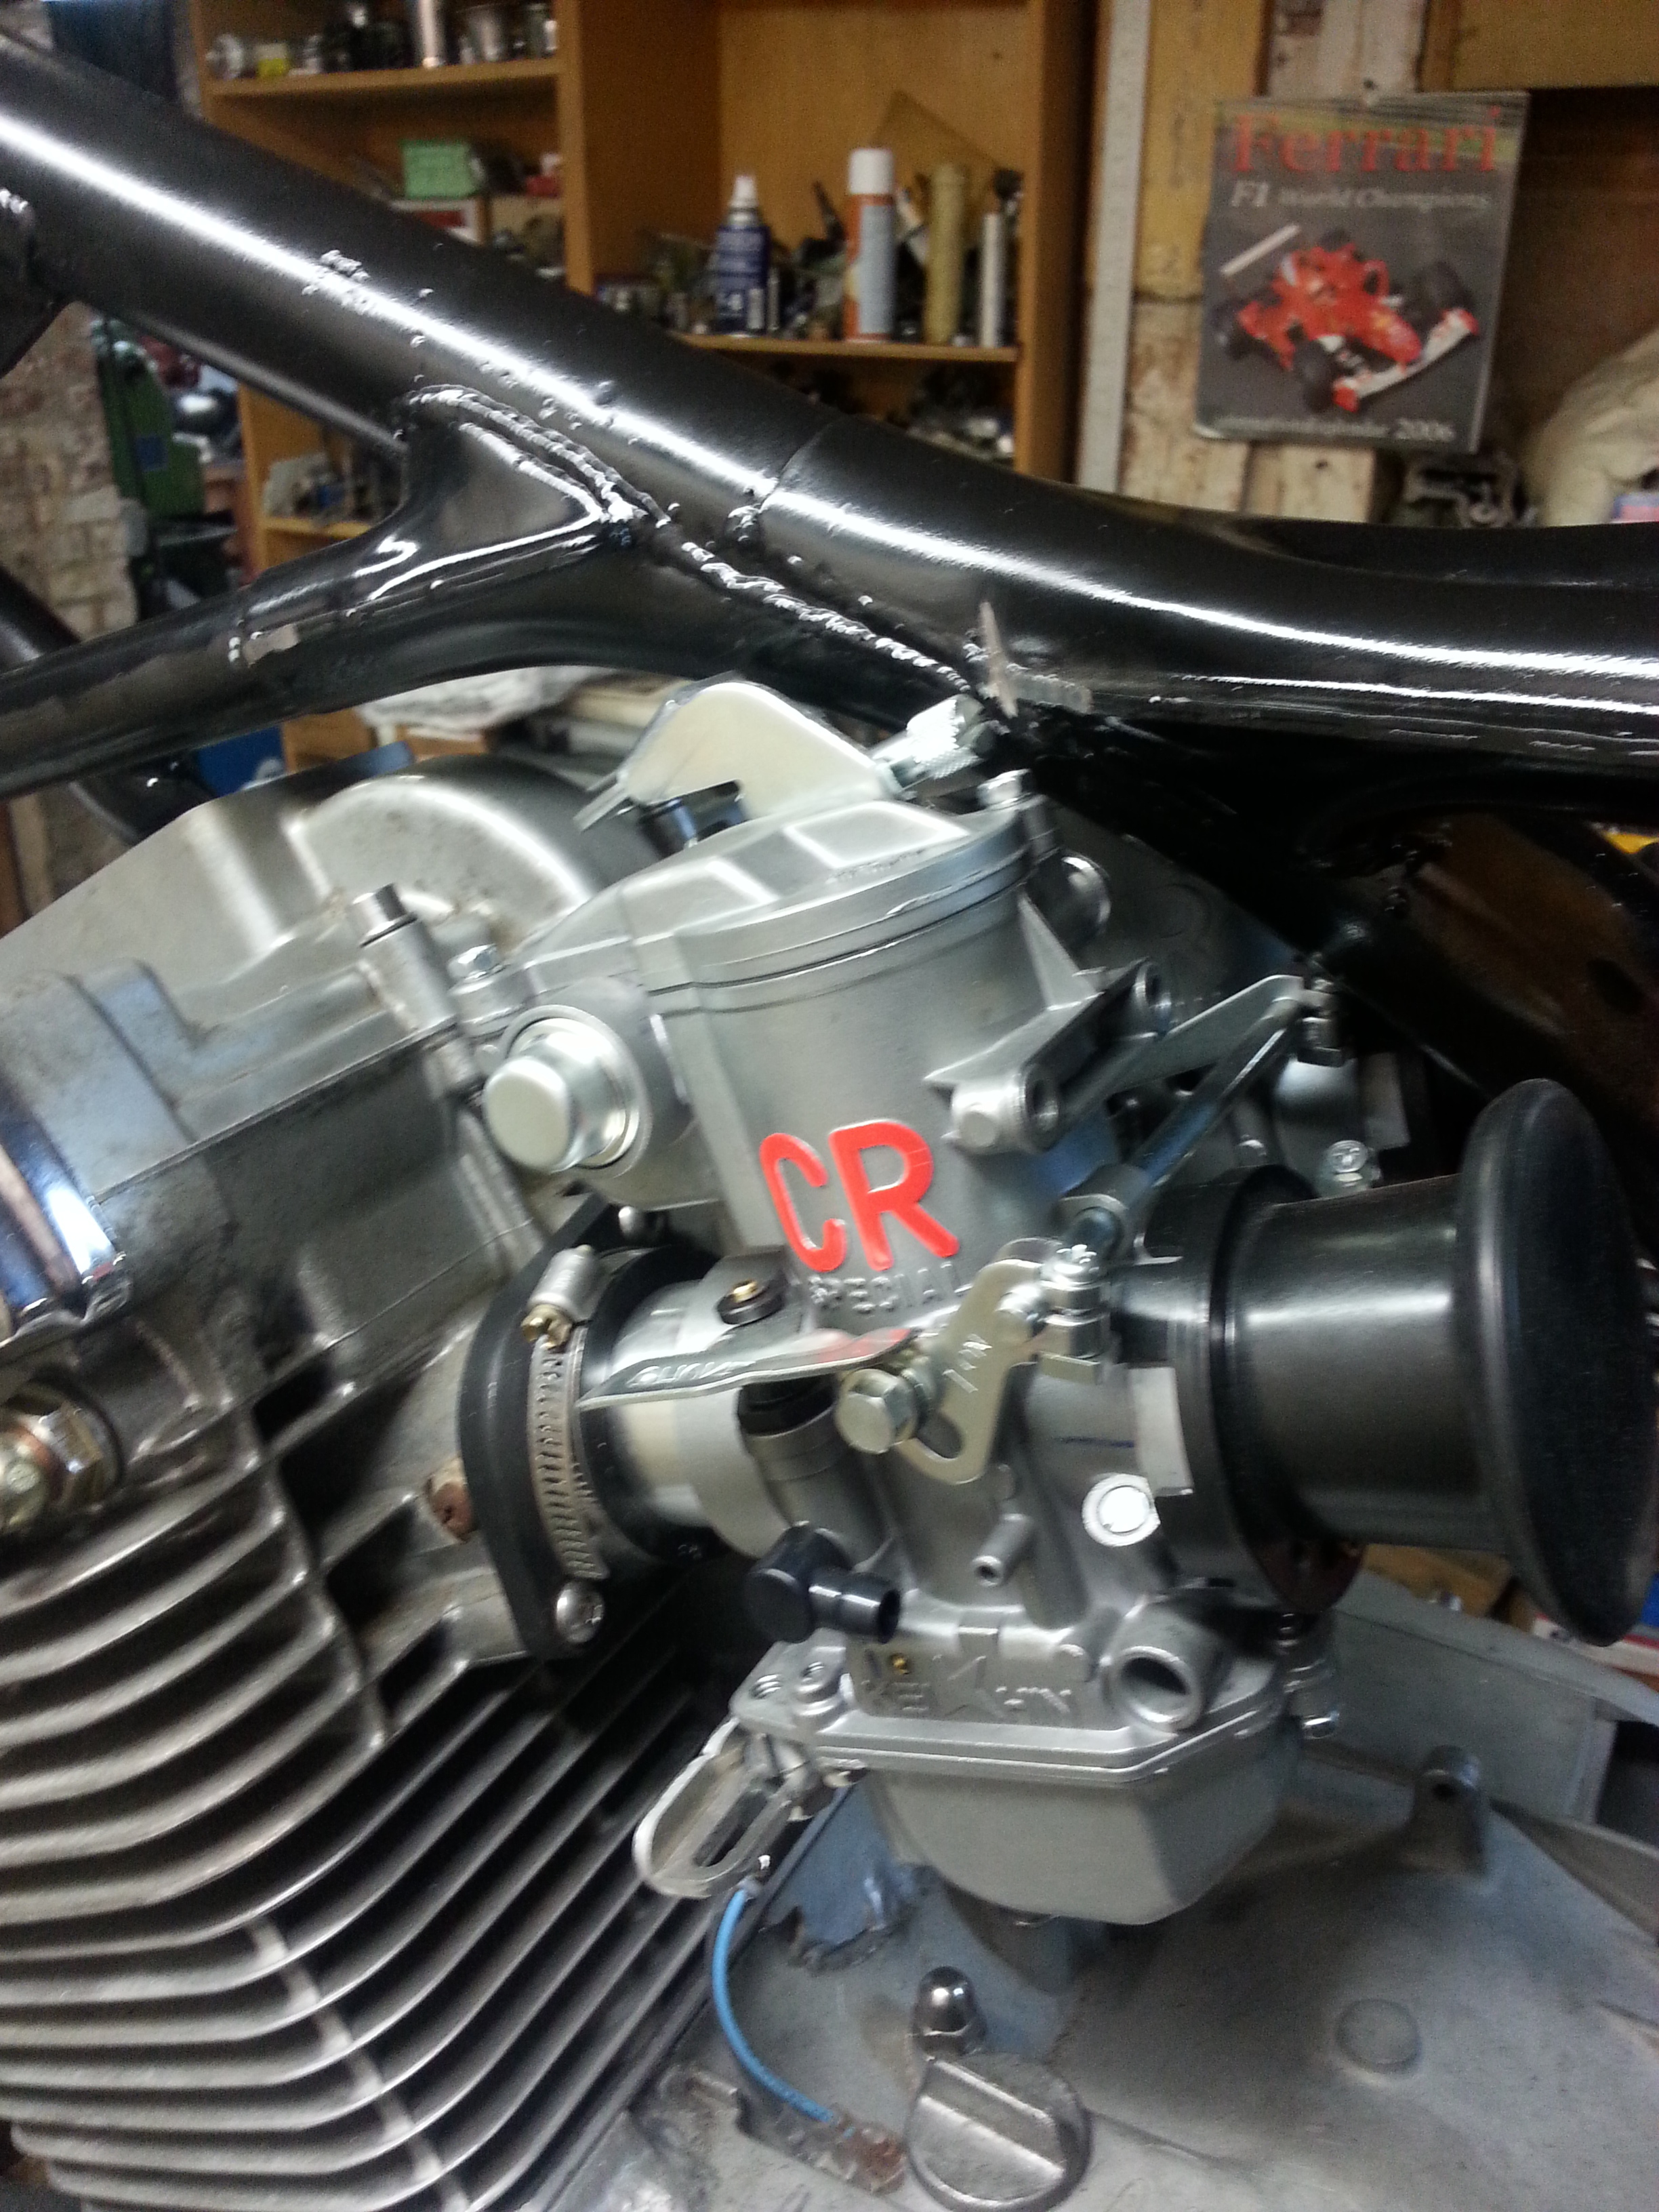 New CR Carburetors fitted for maximum performance